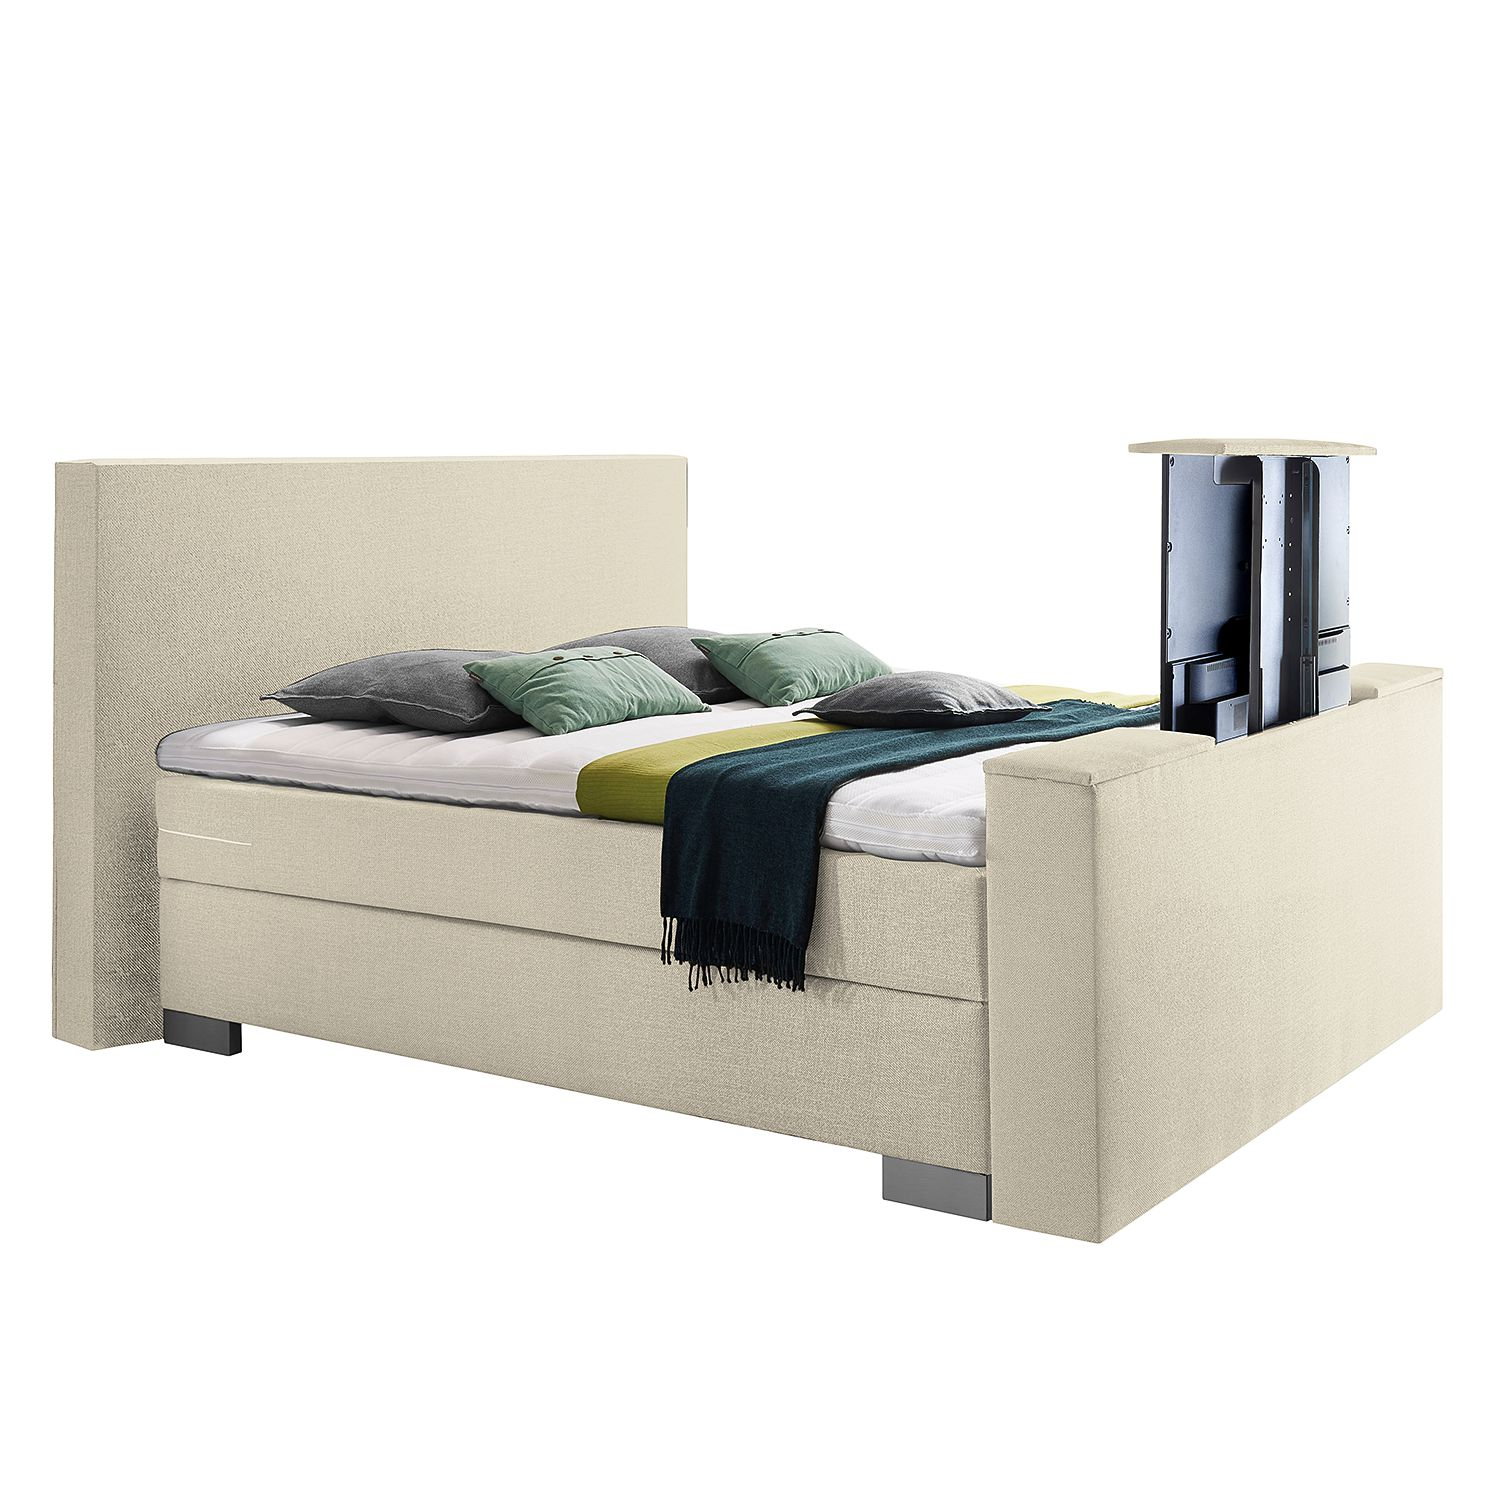 Boxspring Emperial Night II - 180 x 200cm - H2 tot 80kg - Bonellvering - Crème, Grand Selection